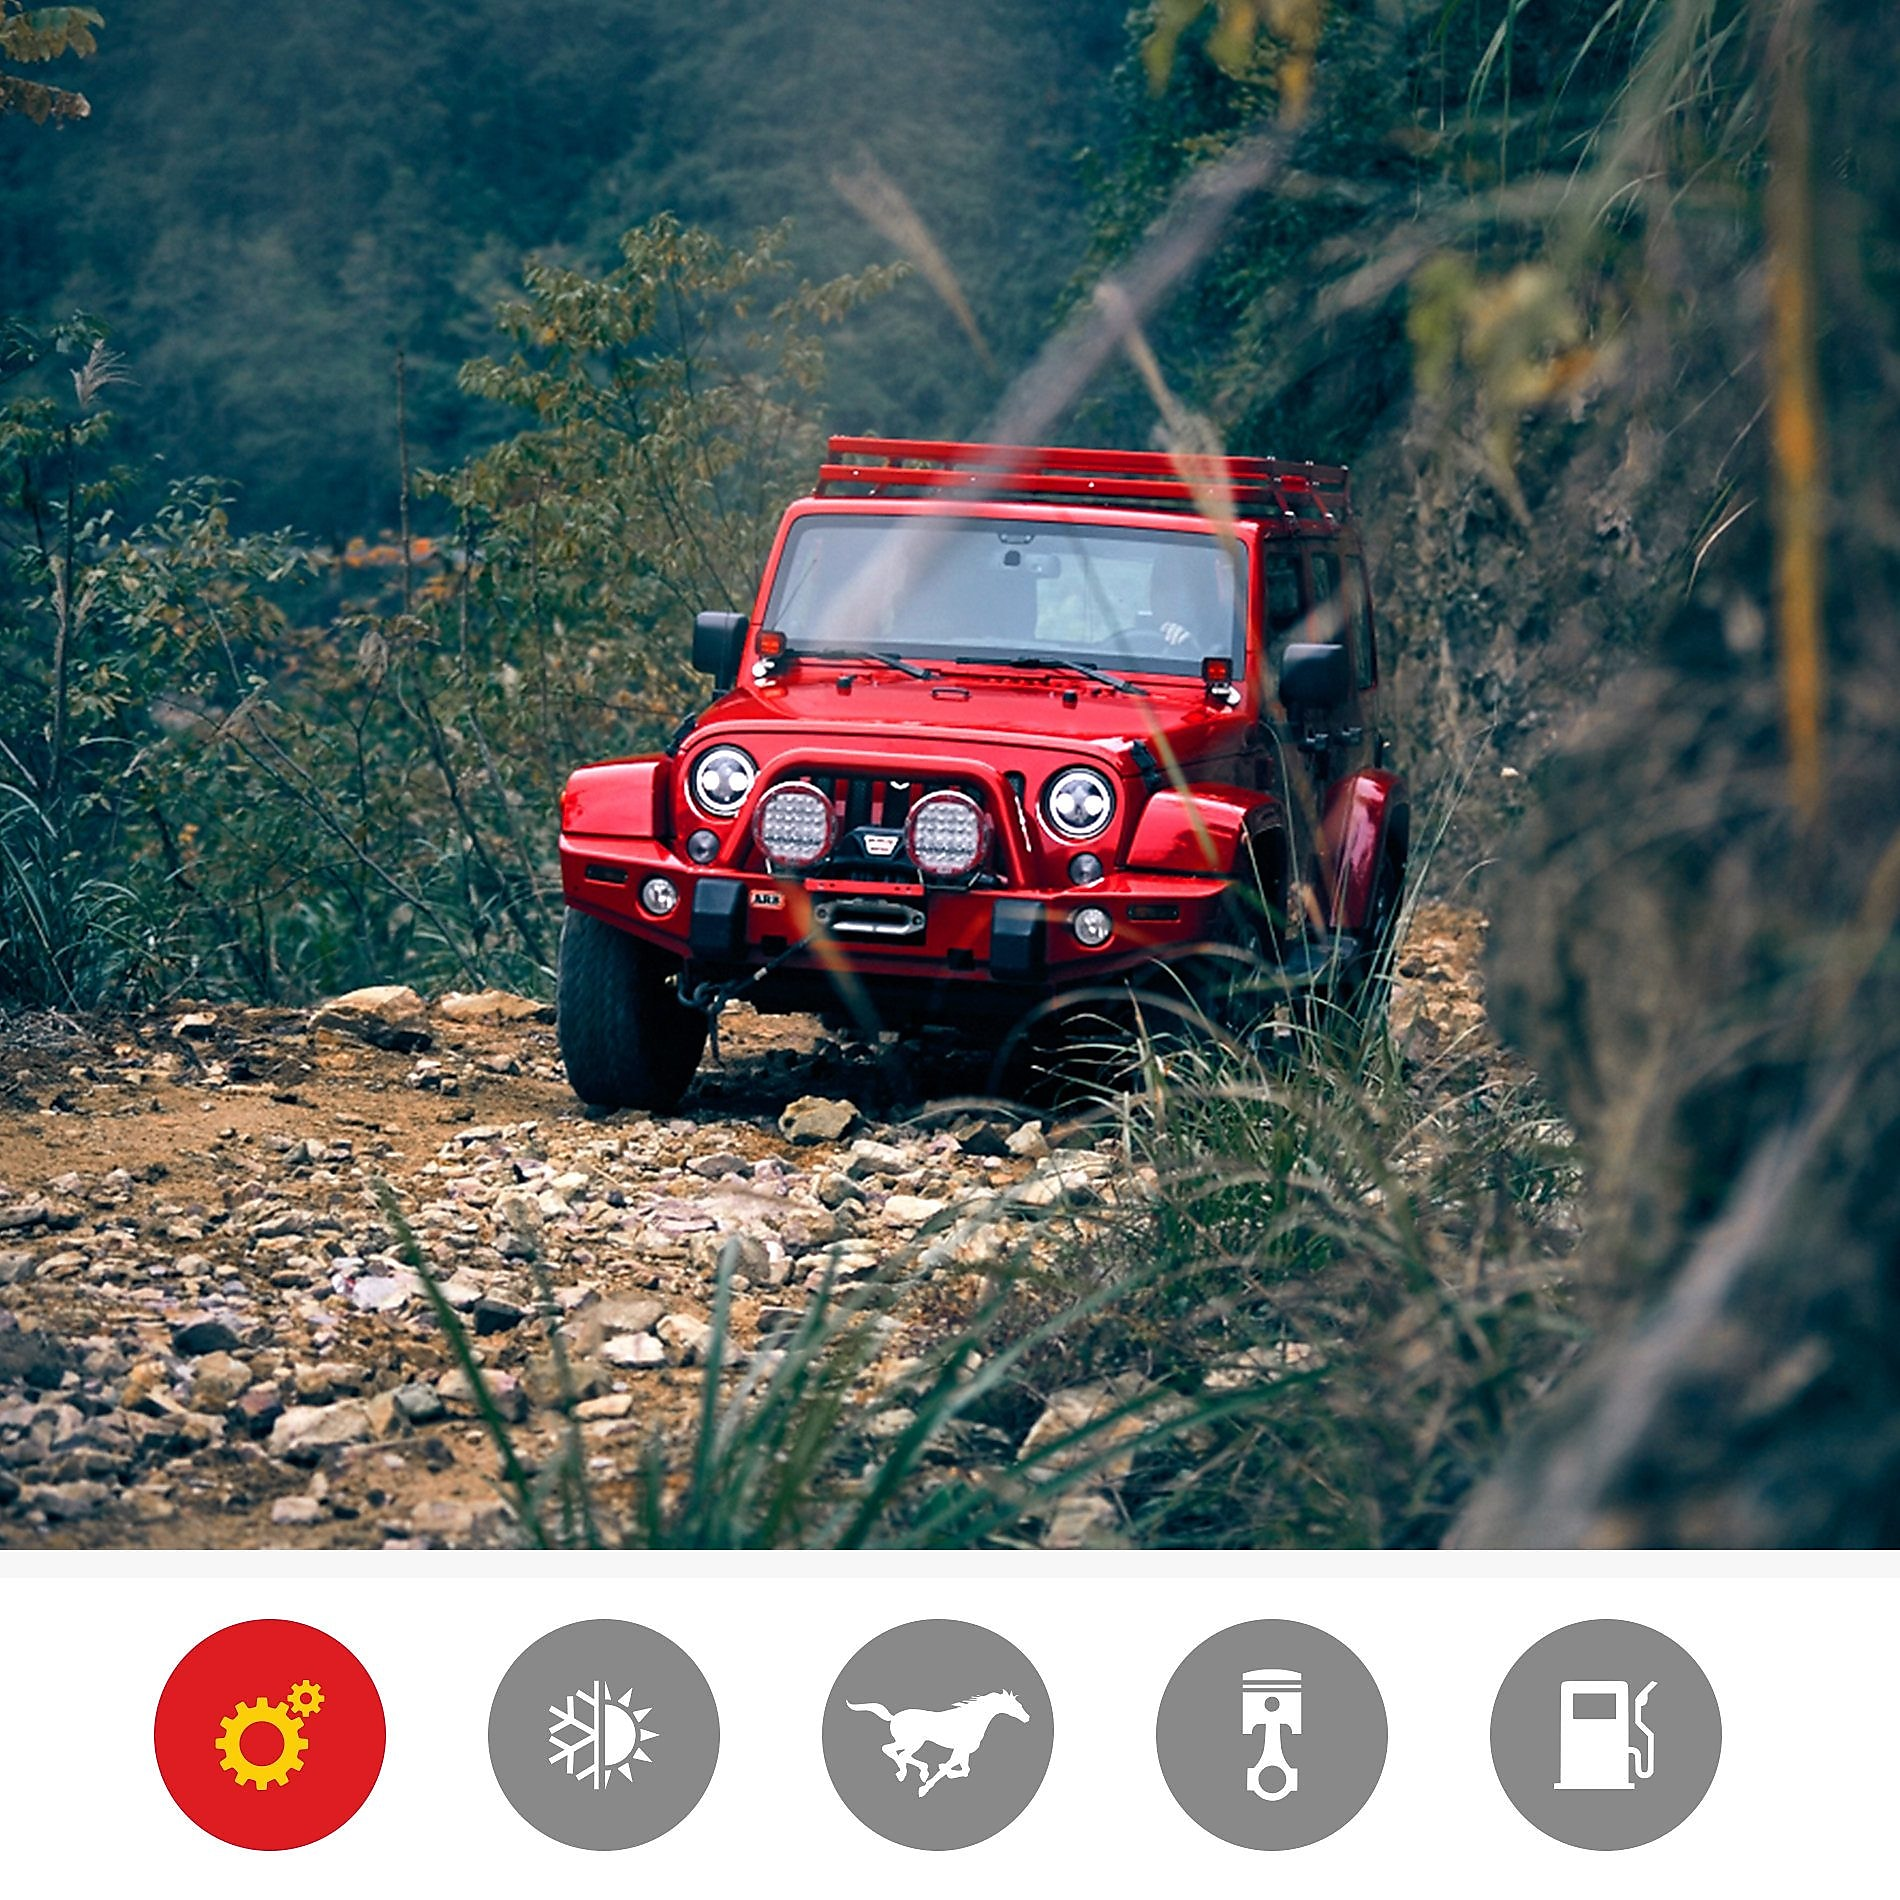 A red jeep on rugged terrain demonstrates the Shell Helix Ultra engine stress and wear protection product benefit